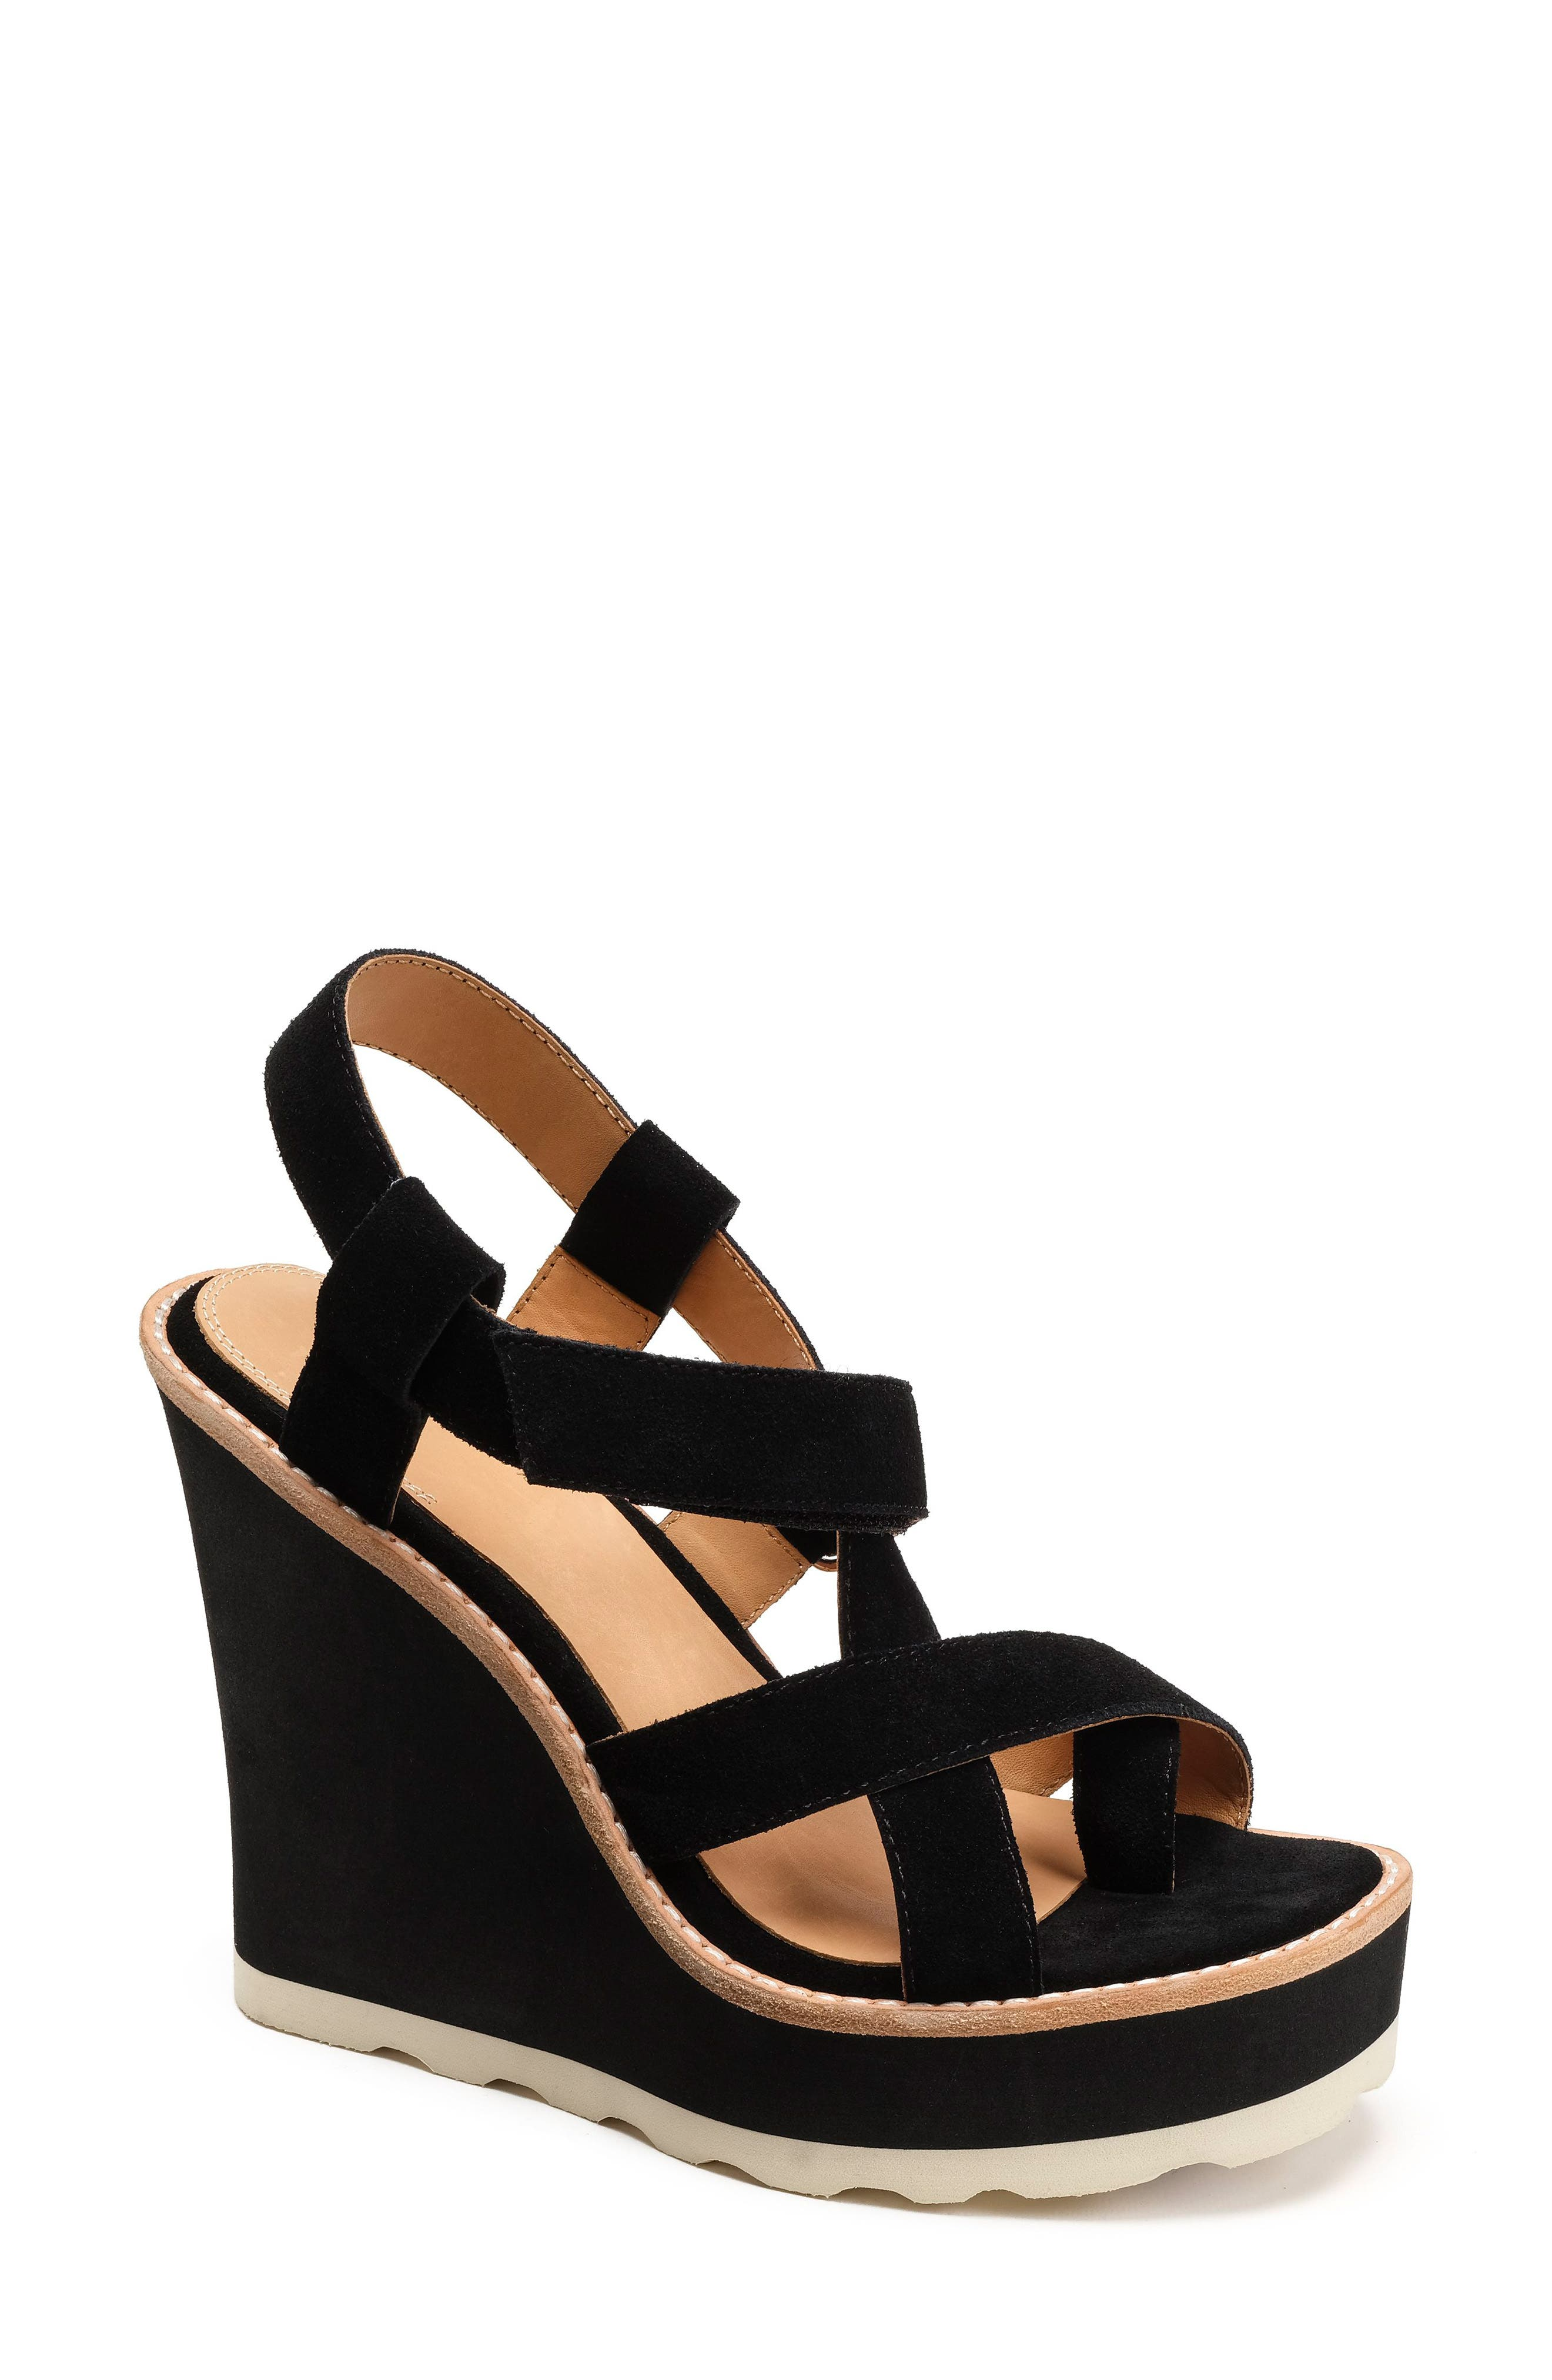 Rae Strappy Wedge Sandal,                             Main thumbnail 1, color,                             001